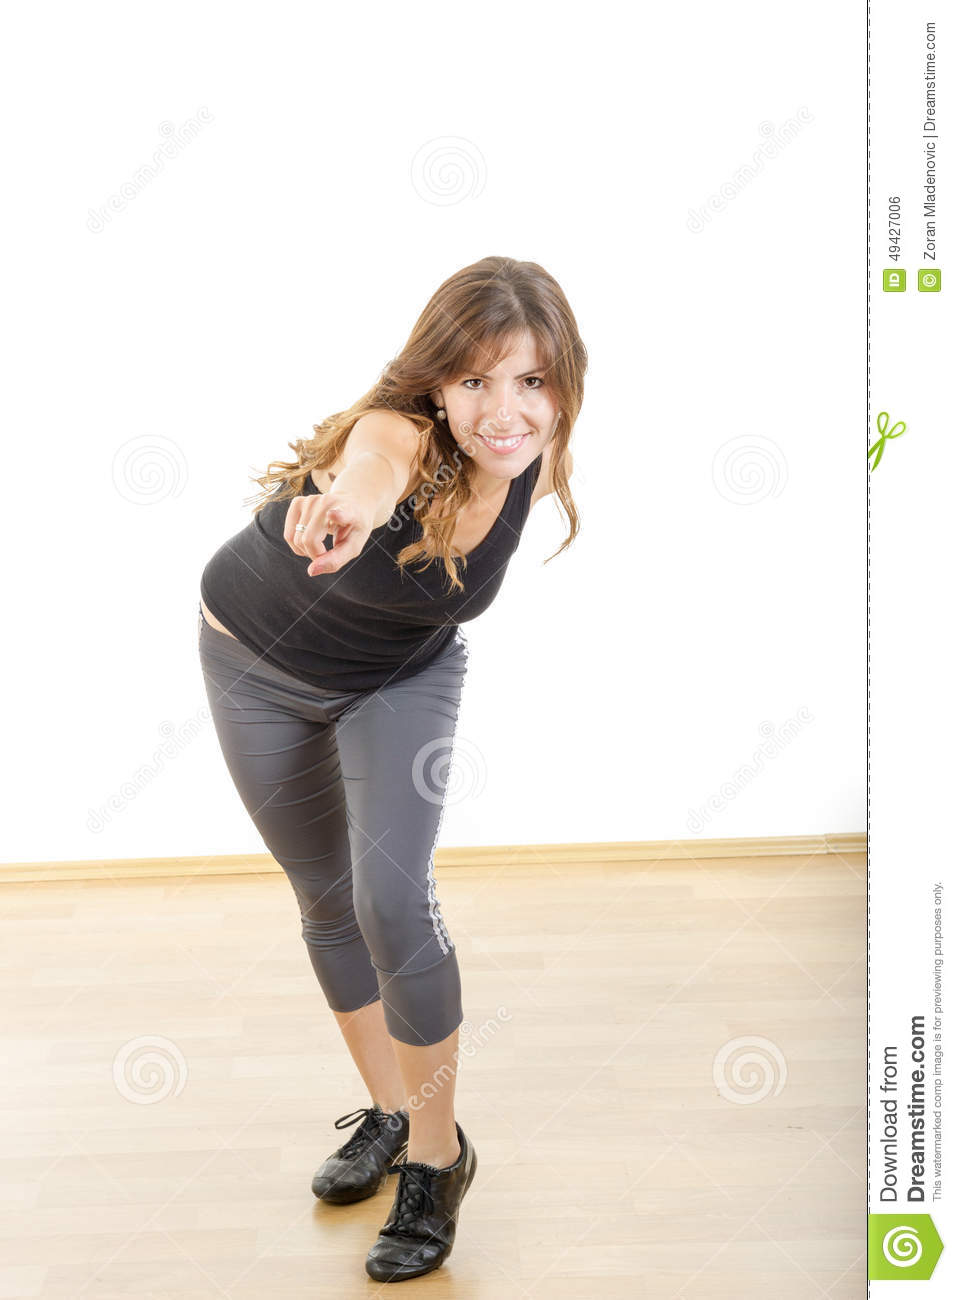 Smiling beautiful sporty fit athletic girl or woman pointing fin